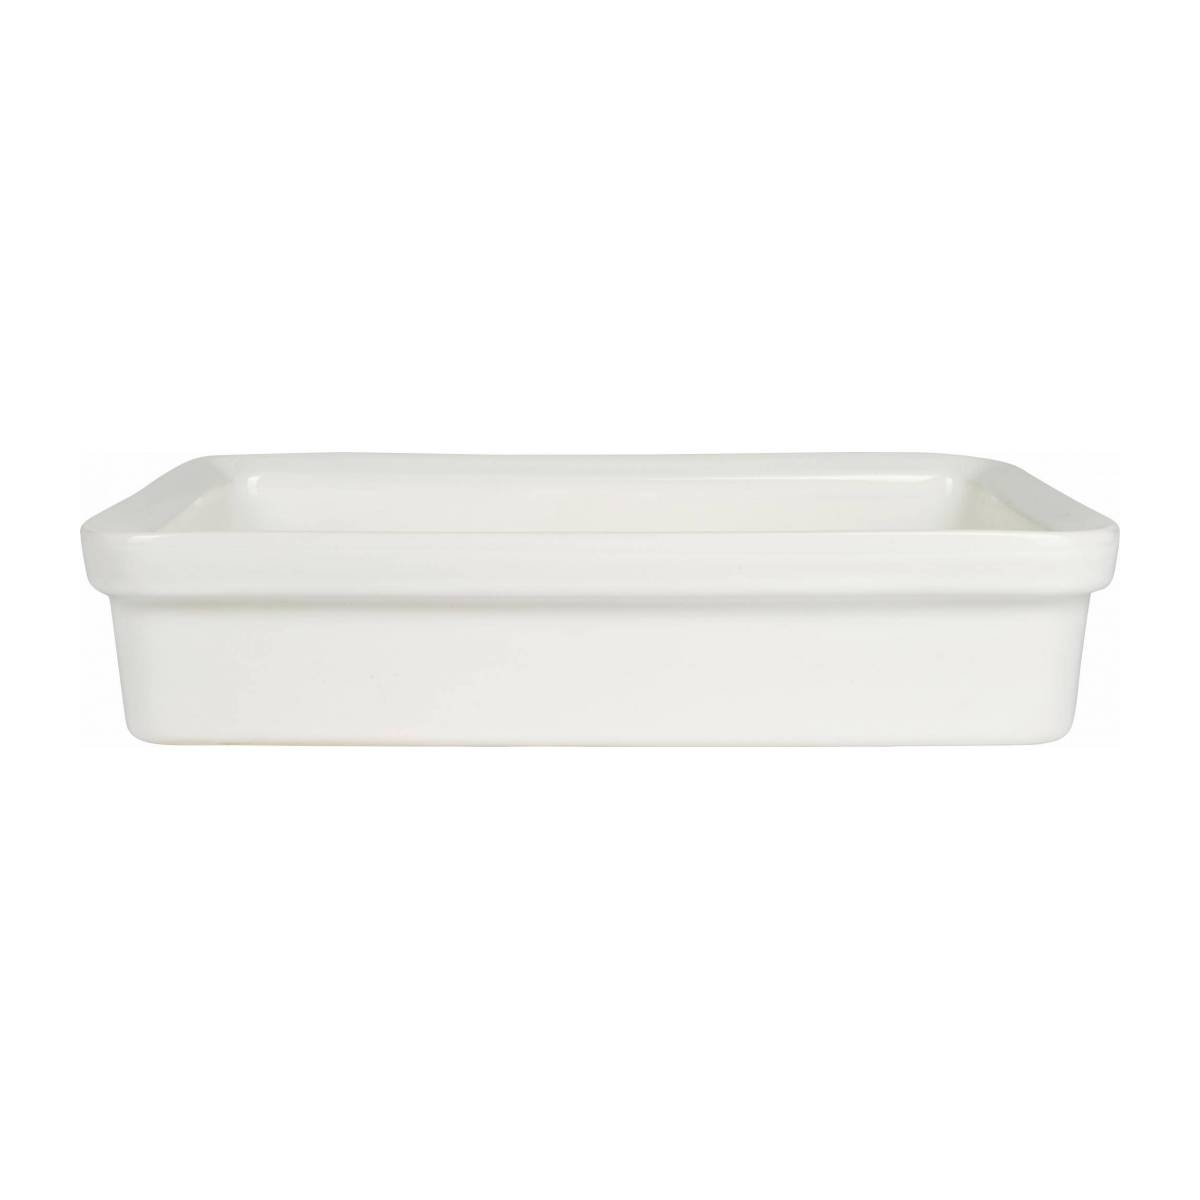 Oven dish made of faience 31x22cm, white n°2